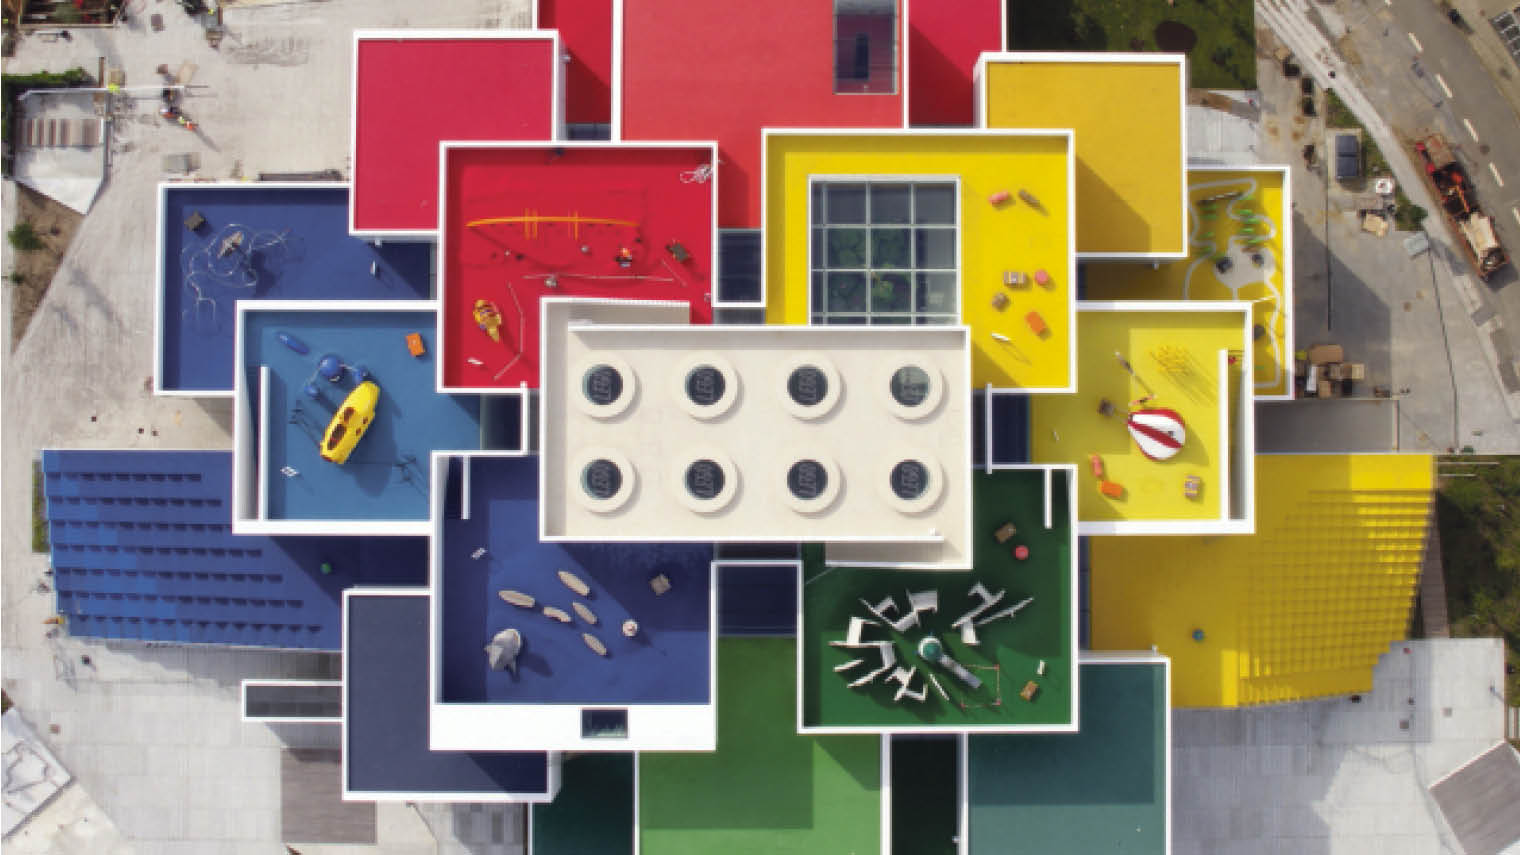 Lego House the brand's newly opened experience centre in Billund, Denmark aerial view